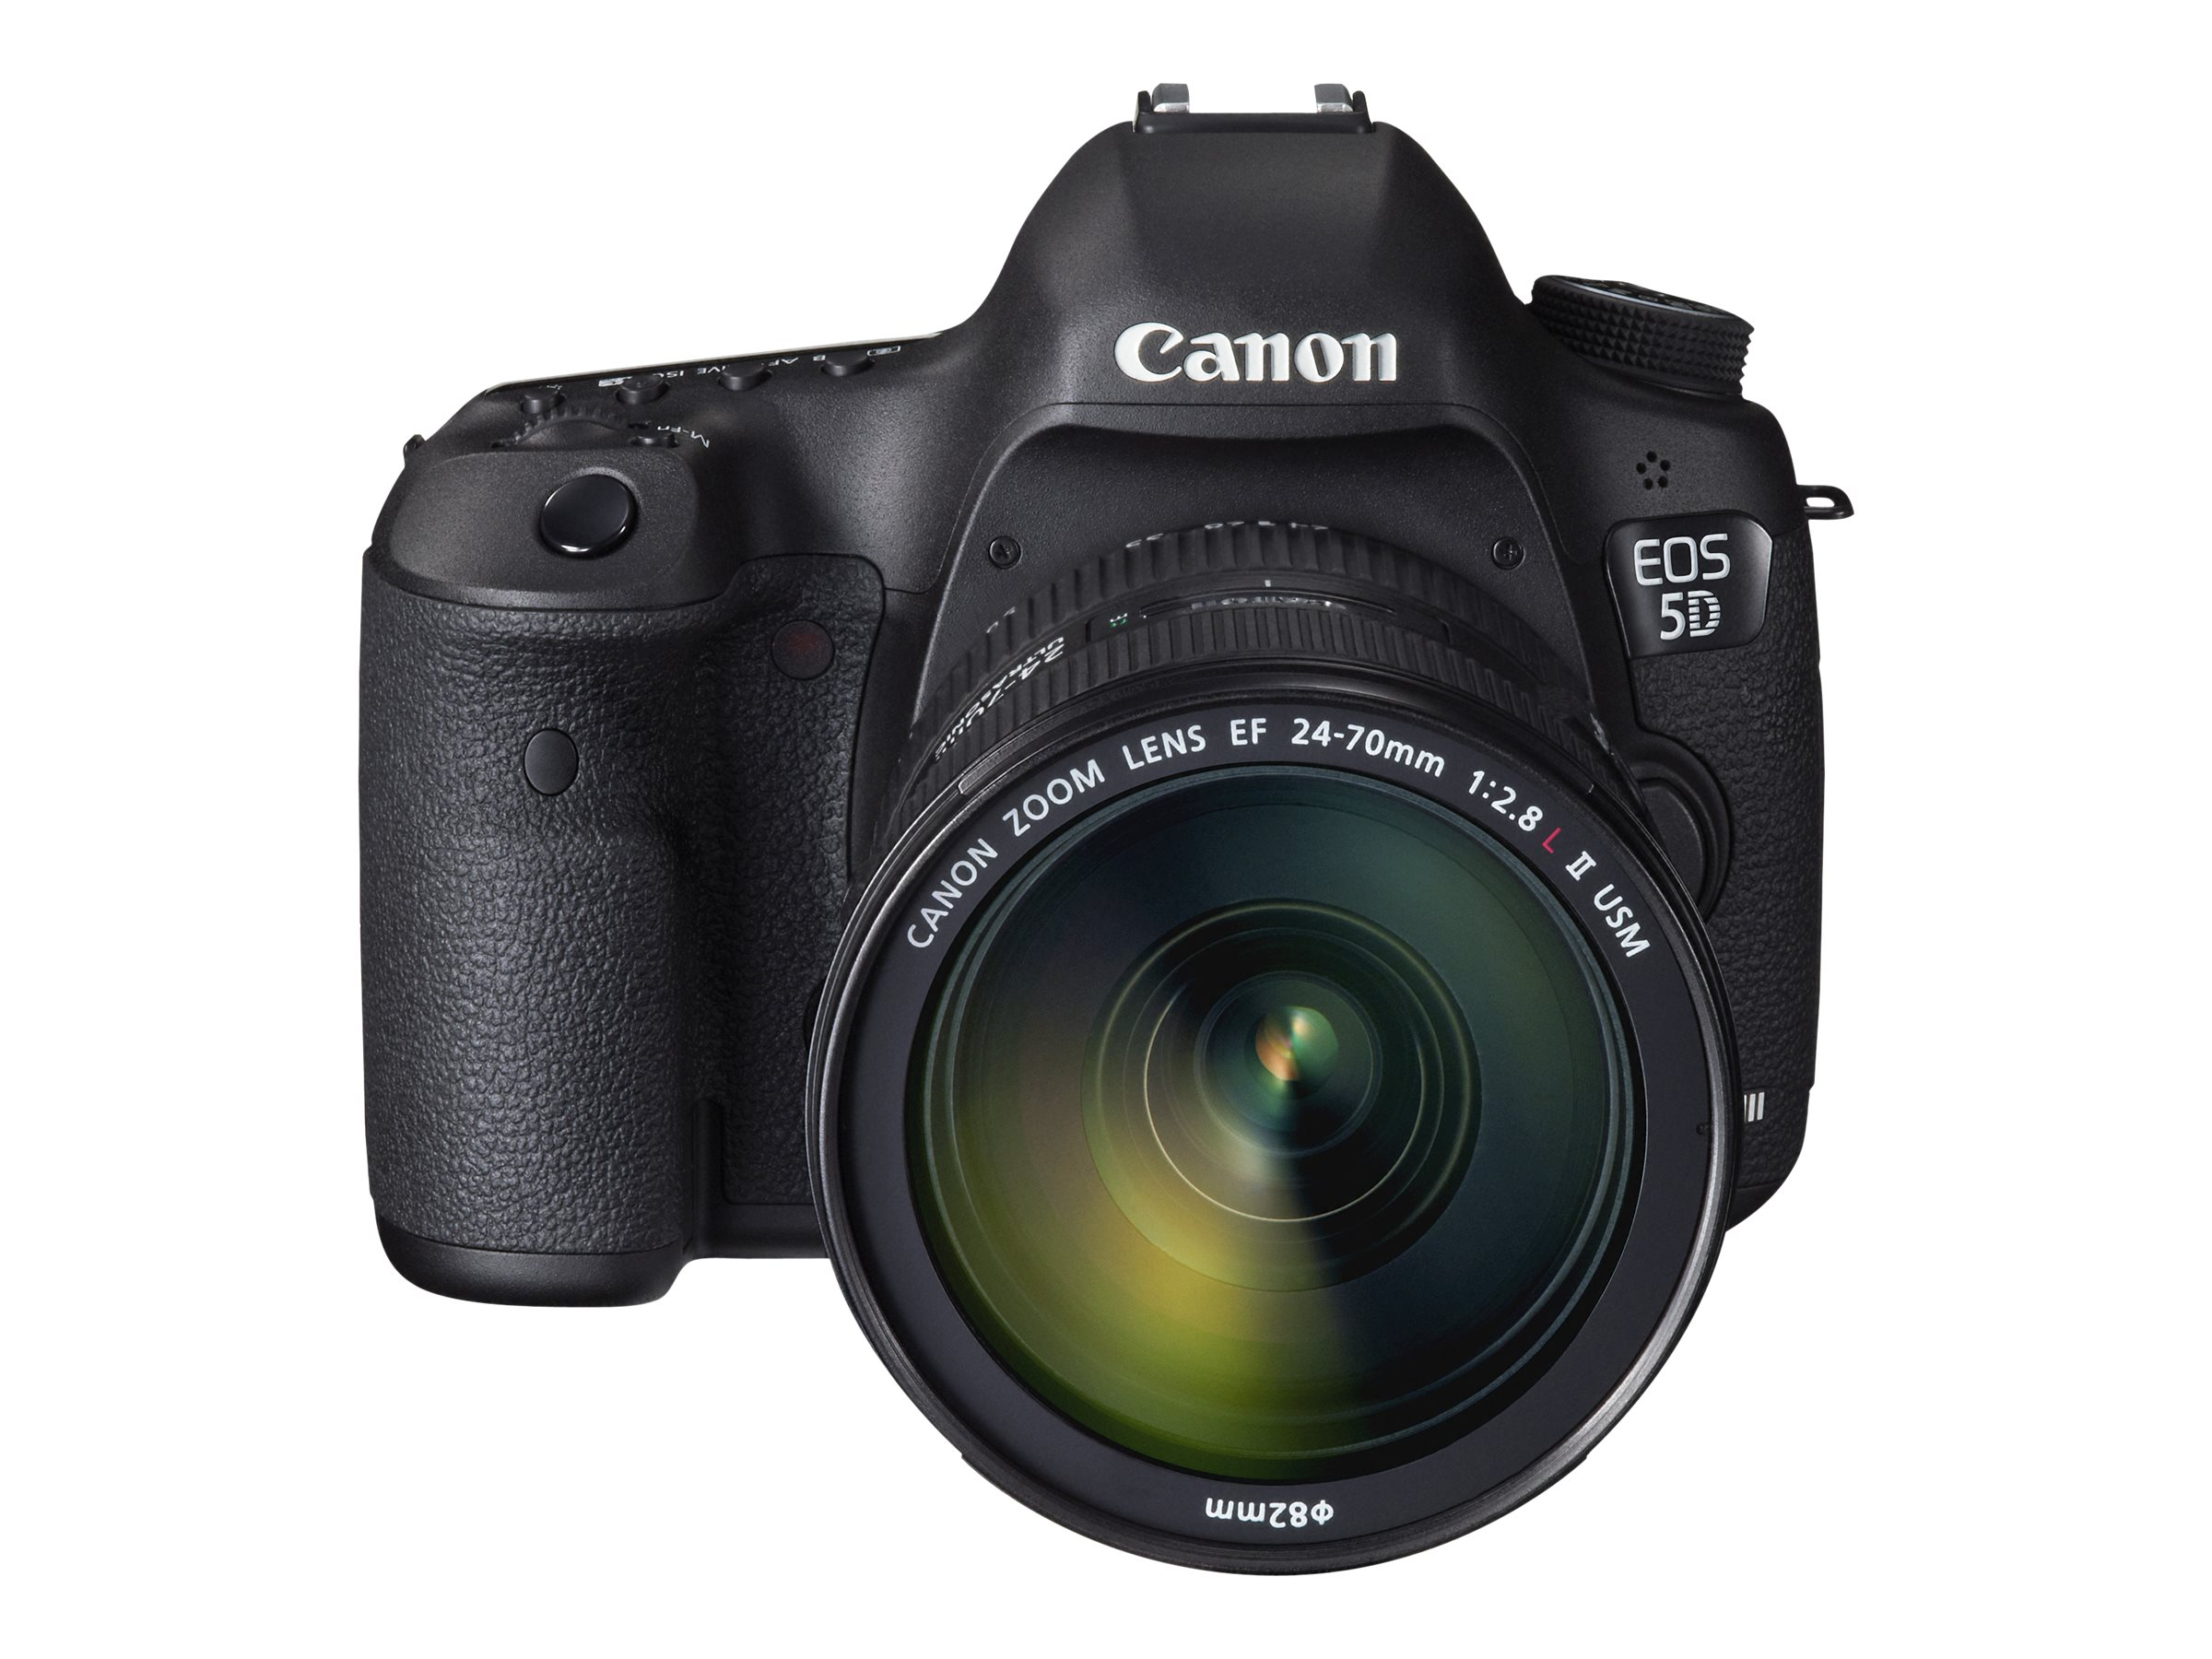 Canon EOS 5D Mark III DSLR Camera with EF 24-70mm Lens, 5260B054